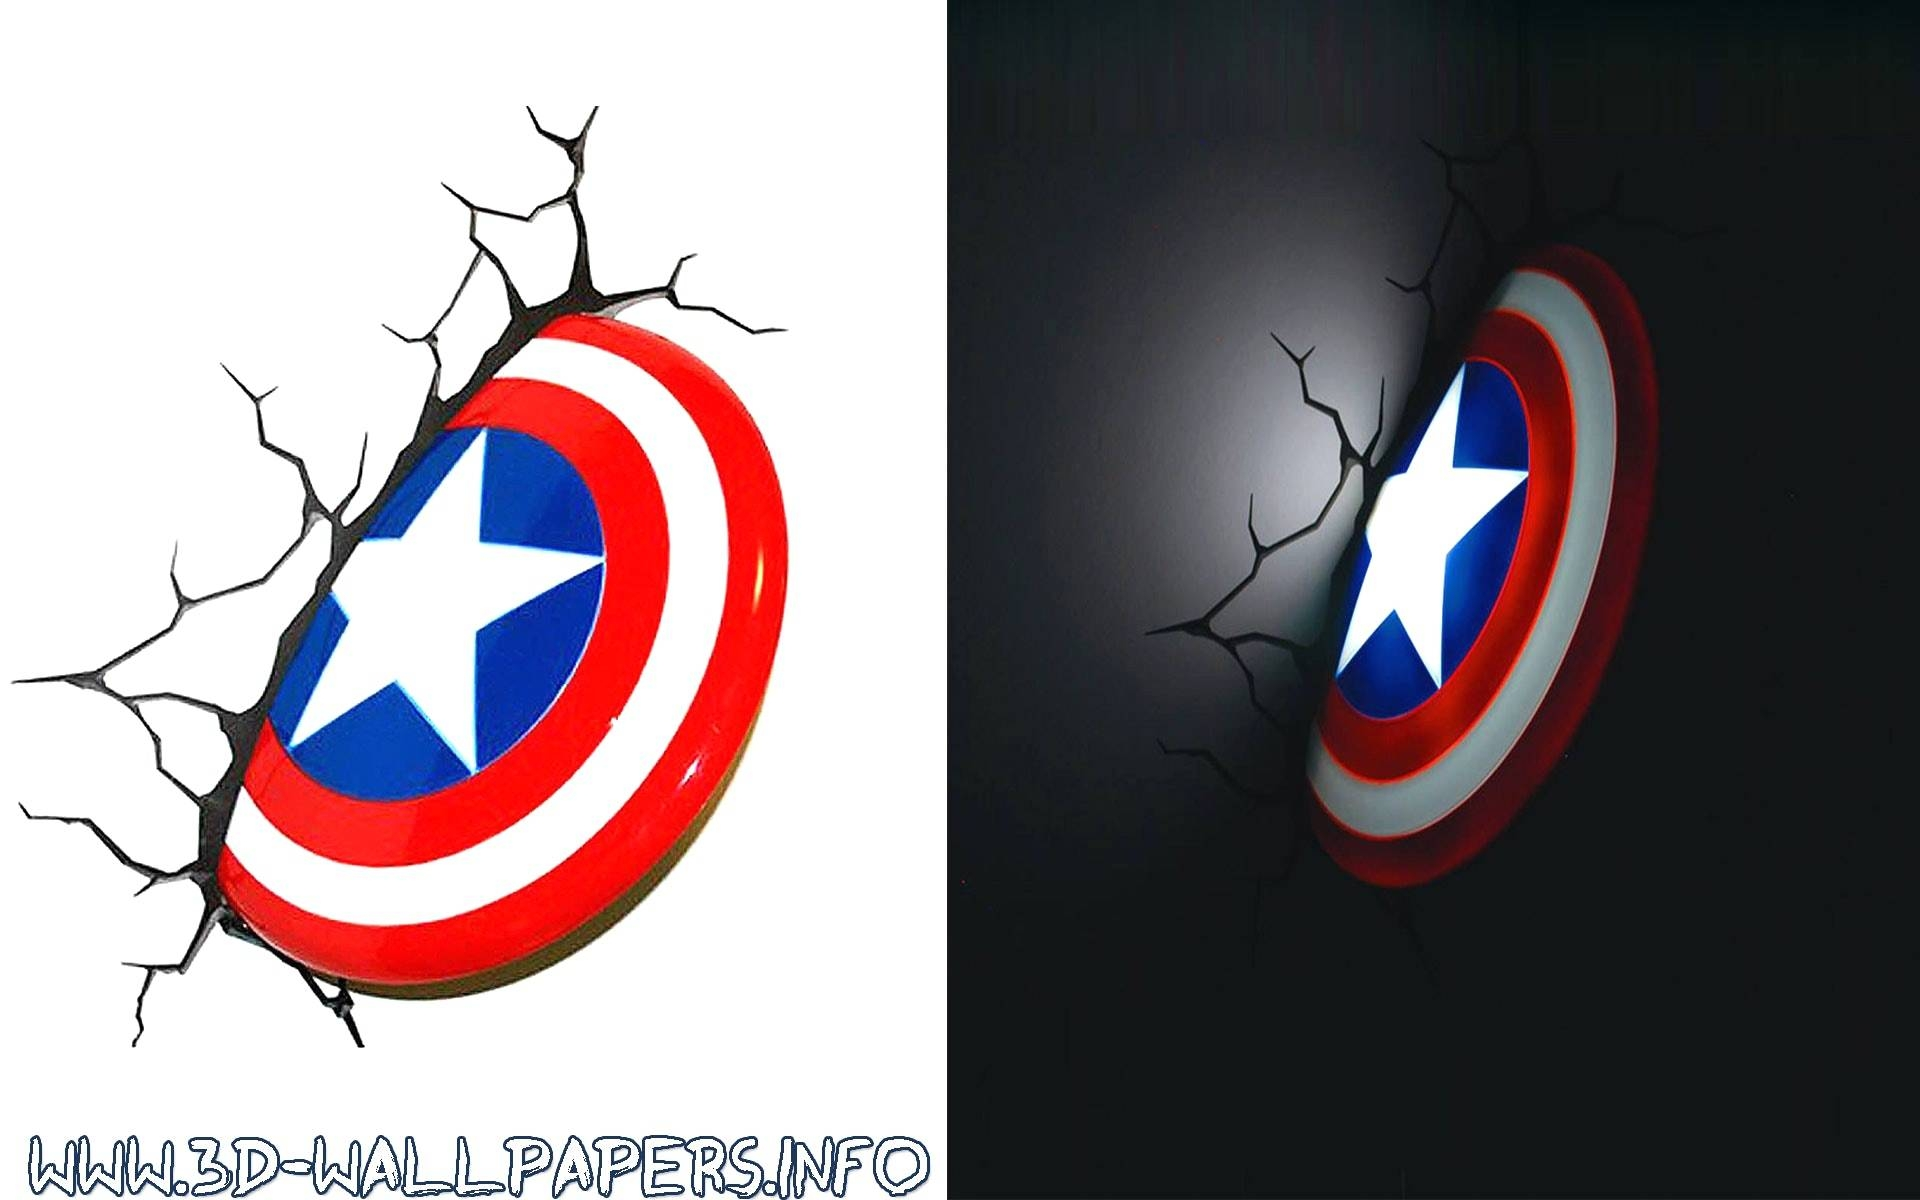 Captain America 3d Wall Light With The Avengers 3d Nightlight This Intended For Most Up To Date 3d Wall Art Captain America Night Light (View 5 of 20)